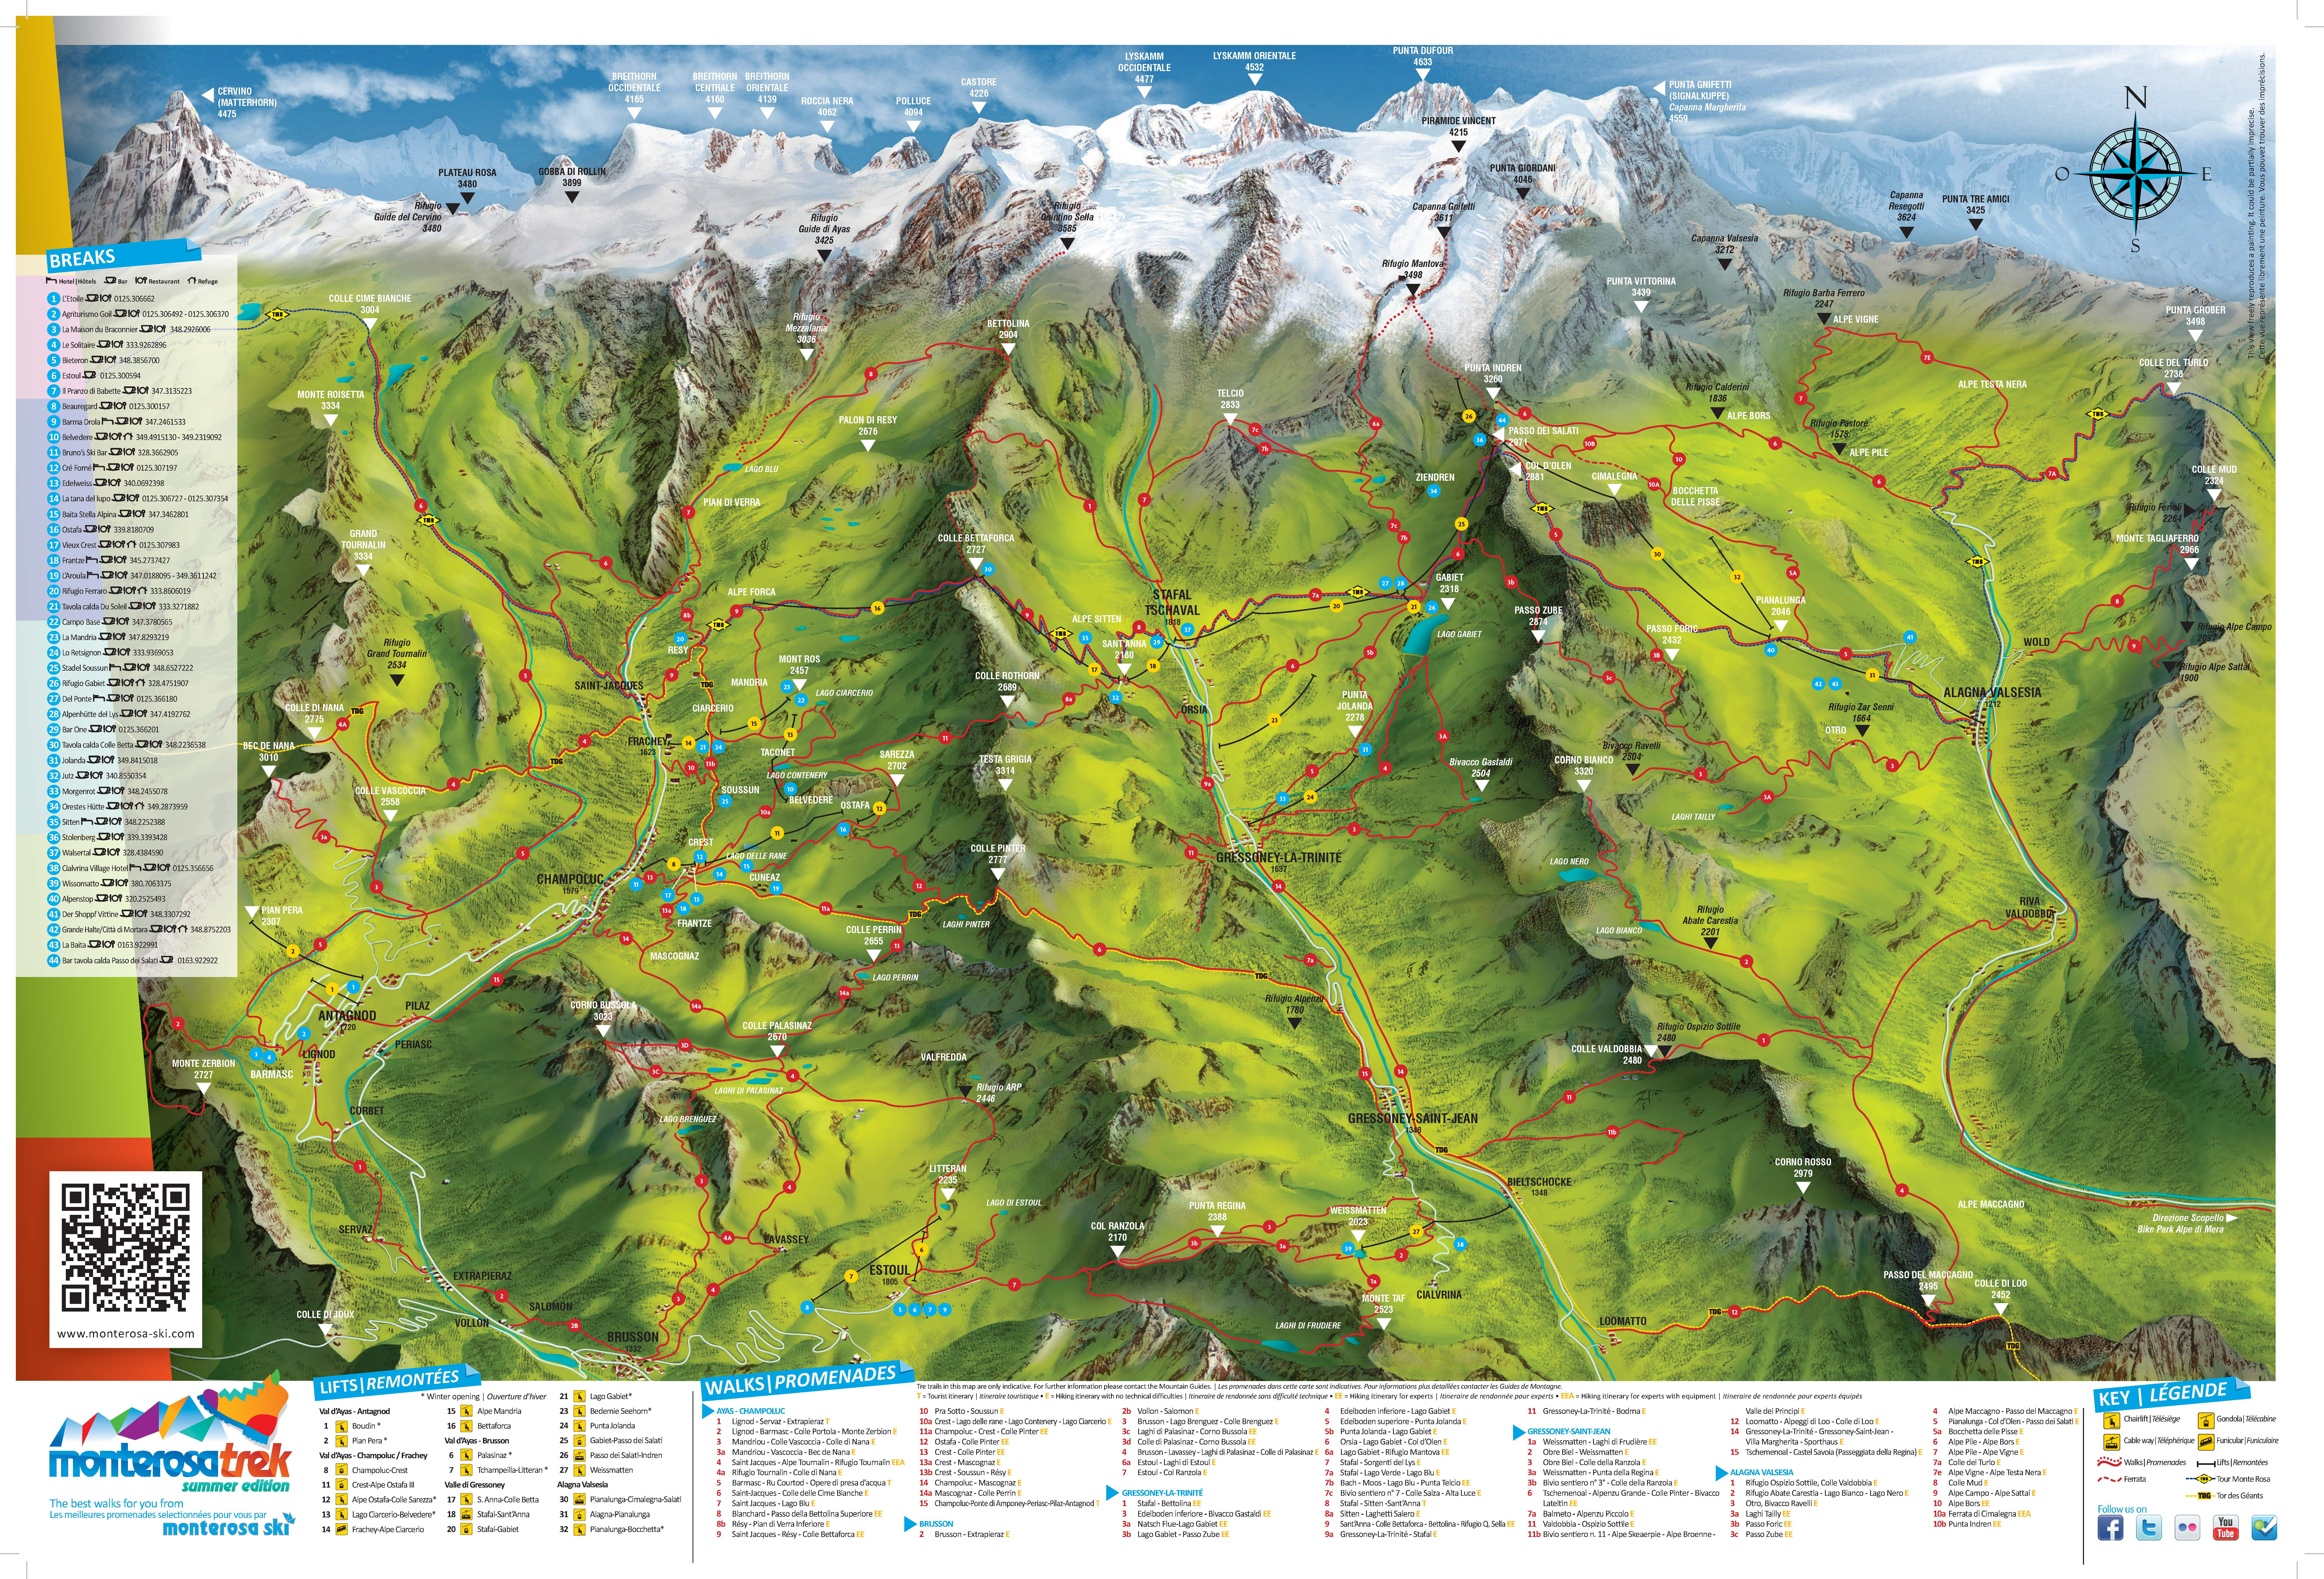 Trek Maps To Monterosa Thealpscom - Sweden map trekking